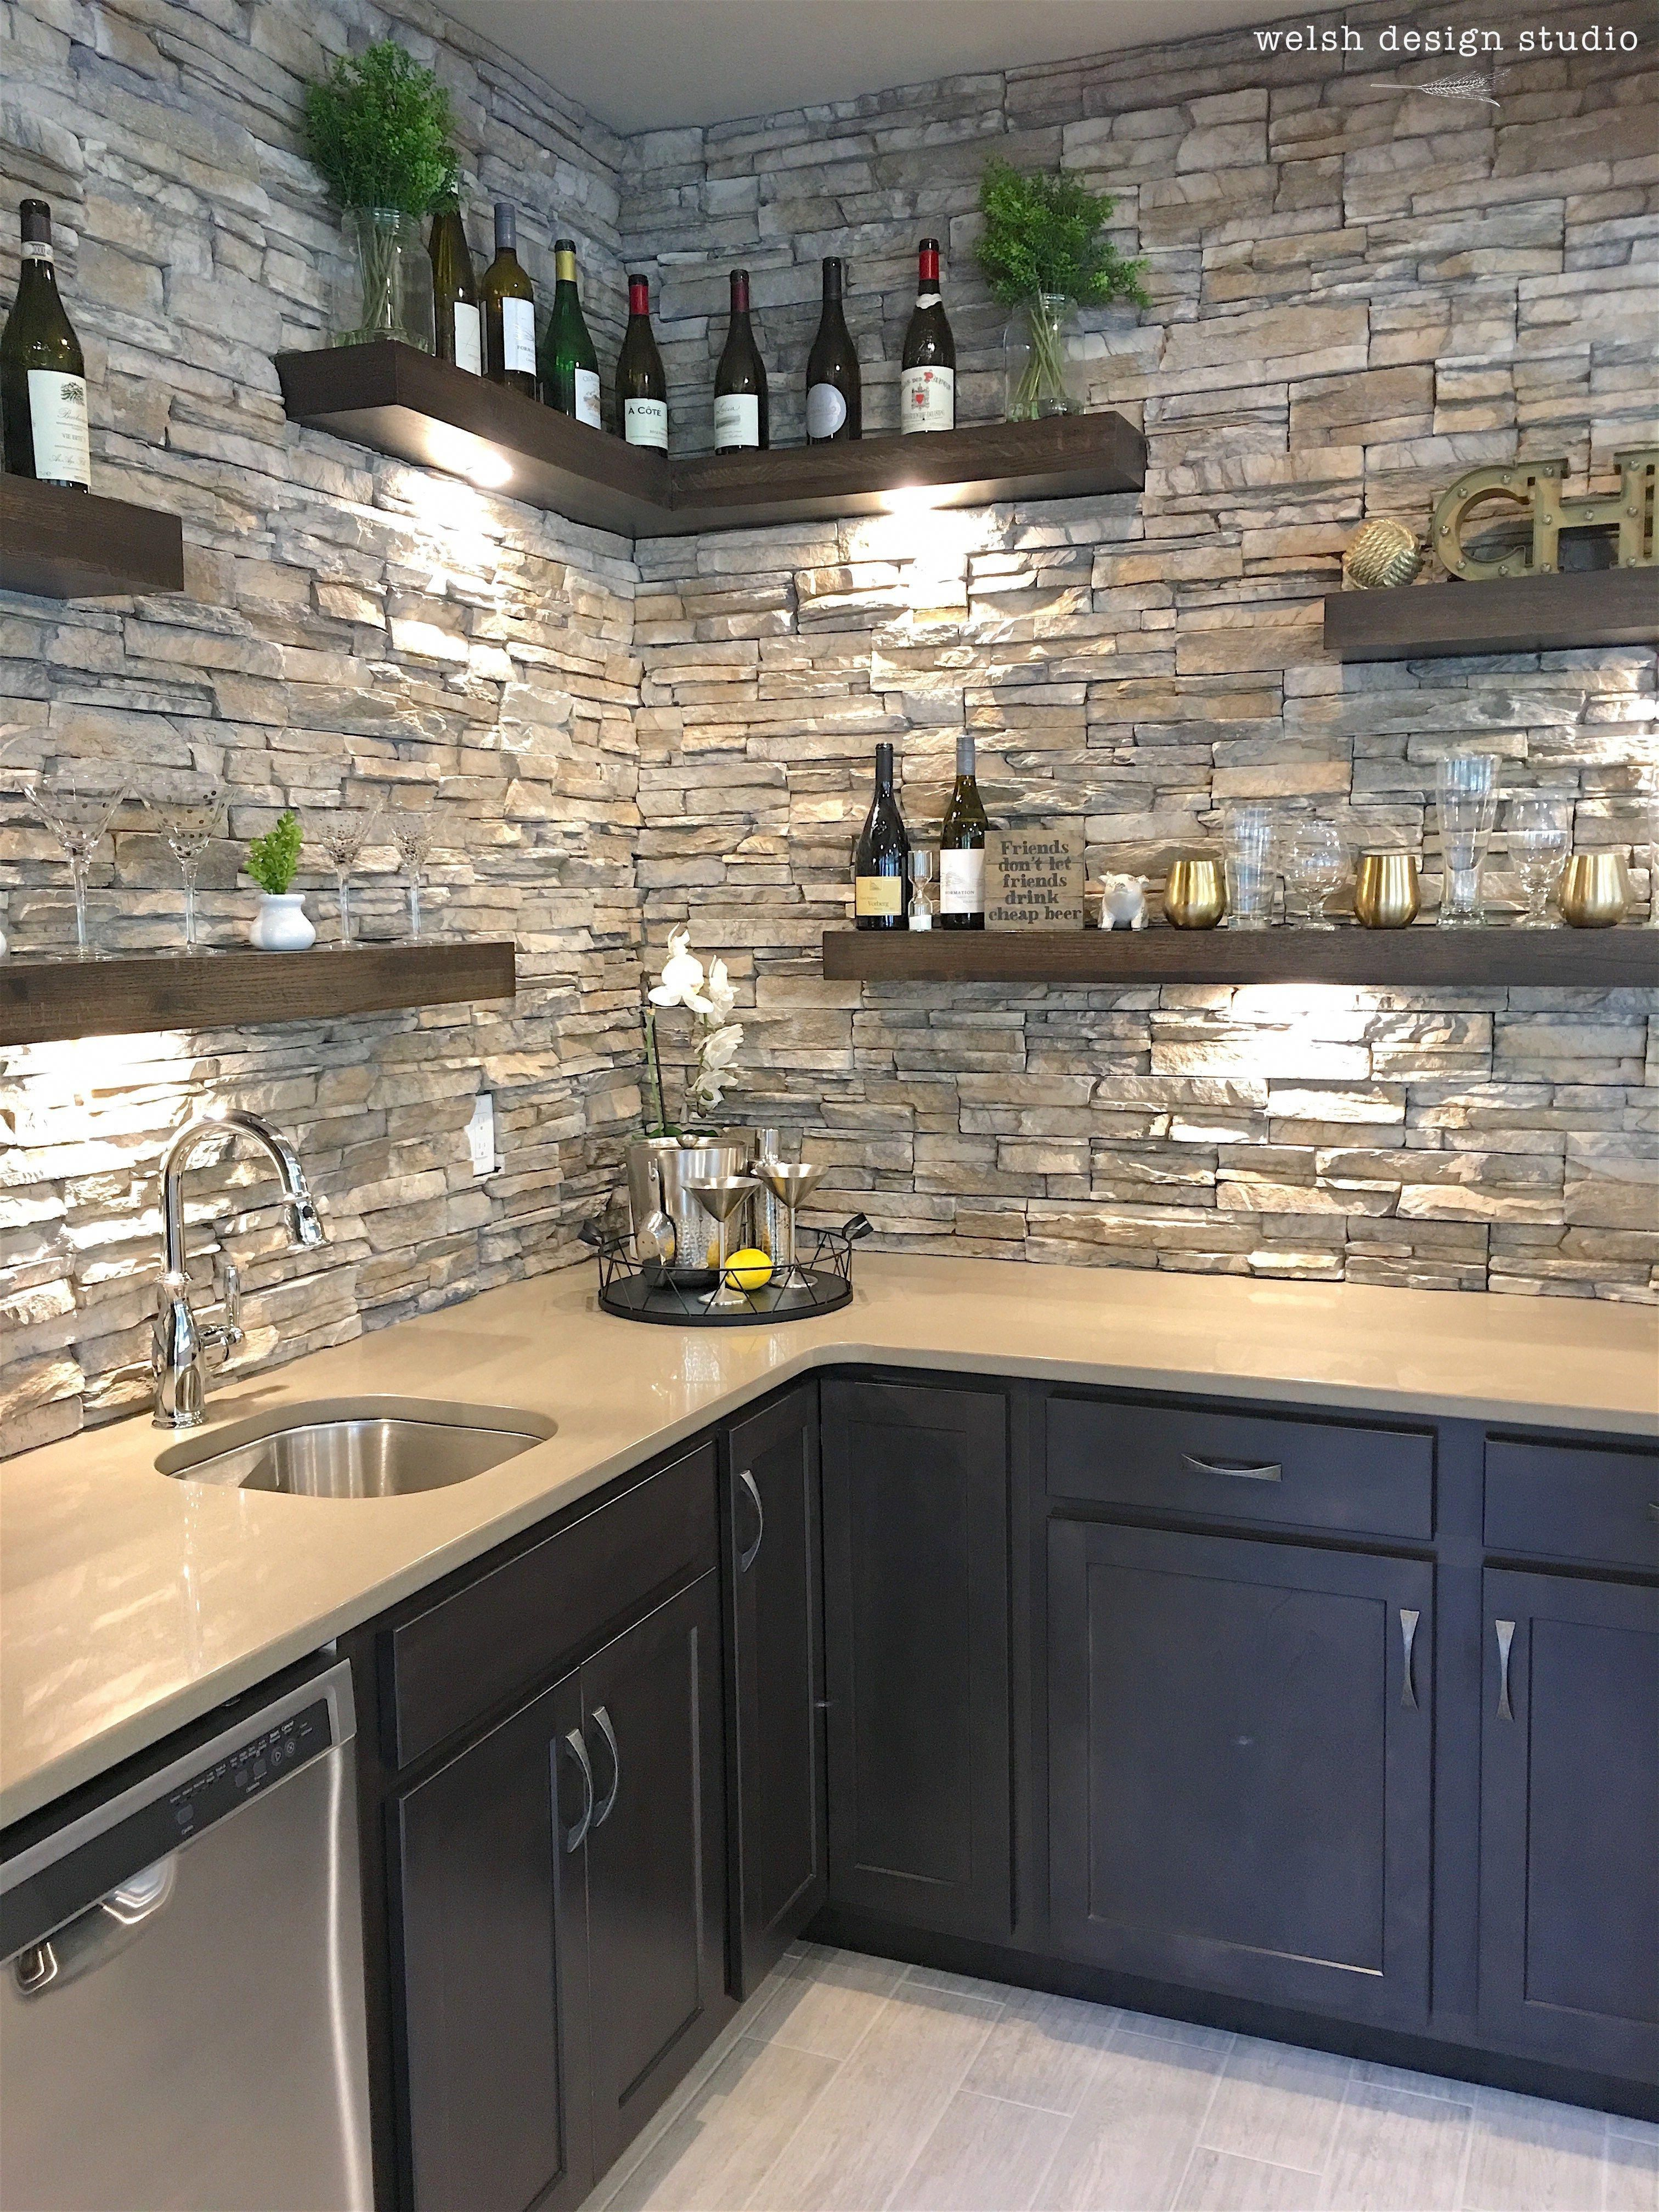 How to improve your basement? (With images) | Farmhouse ...